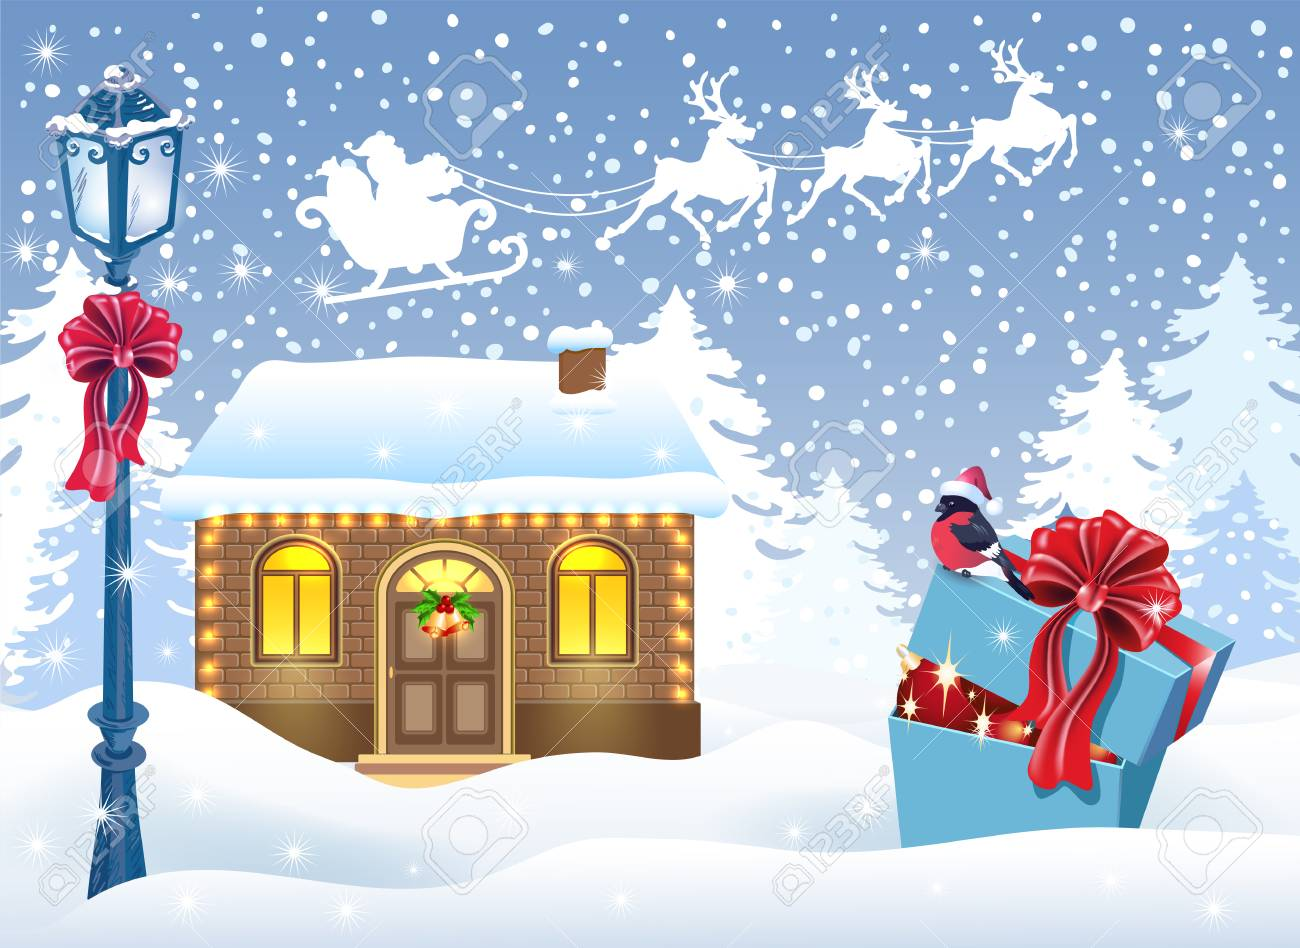 Christmas Card With Santa\'s Workshop And Gift Box Against Winter ...